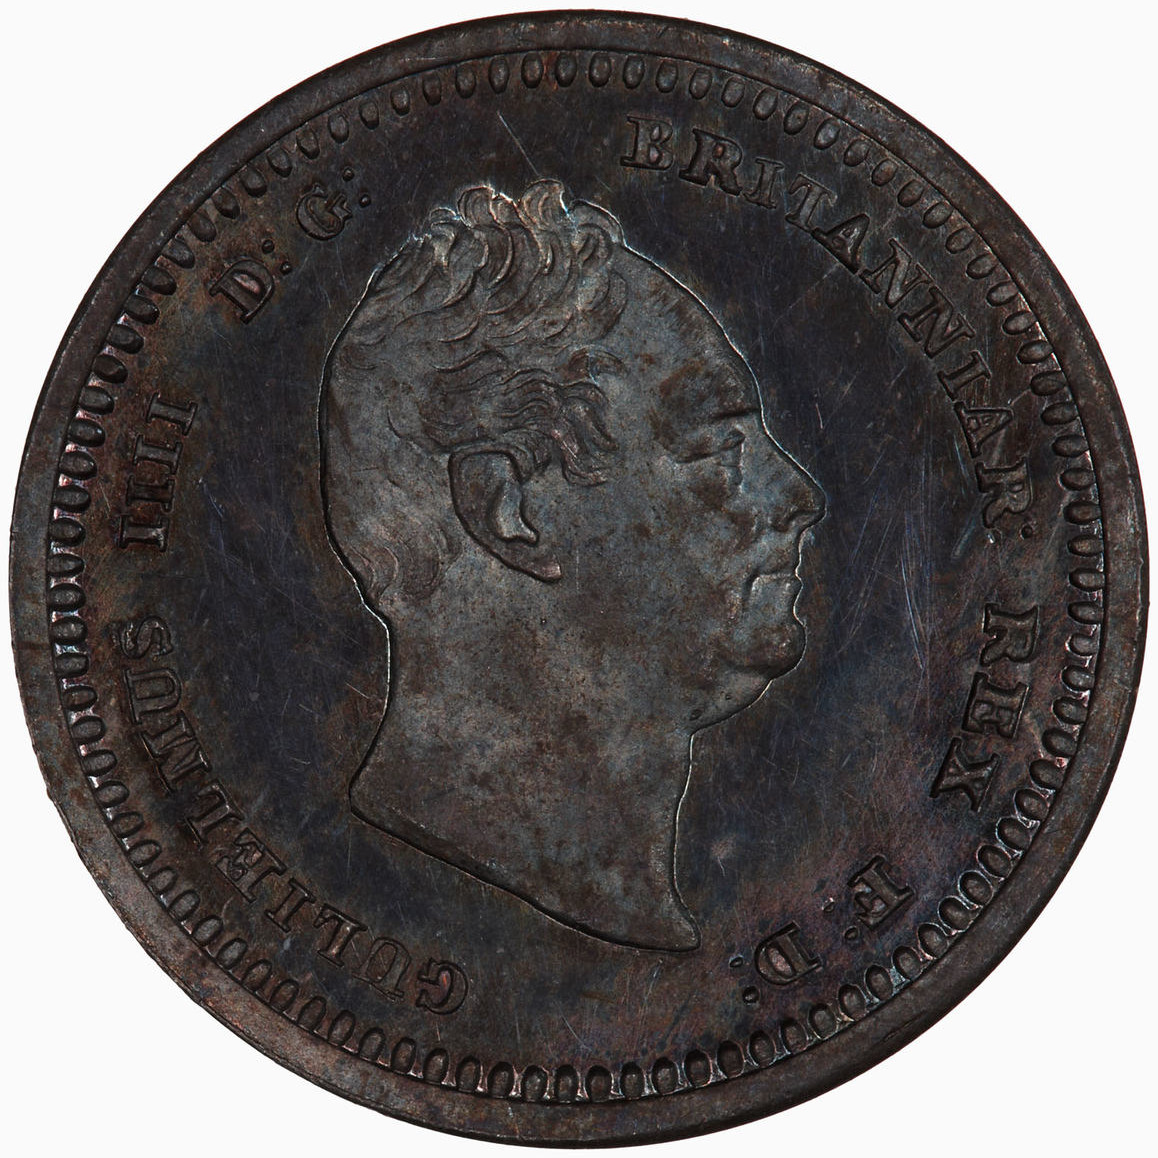 Maundy Twopence (Pre-decimal): Photo Coin - Twopence (Maundy), William IV, Great Britain, 1831